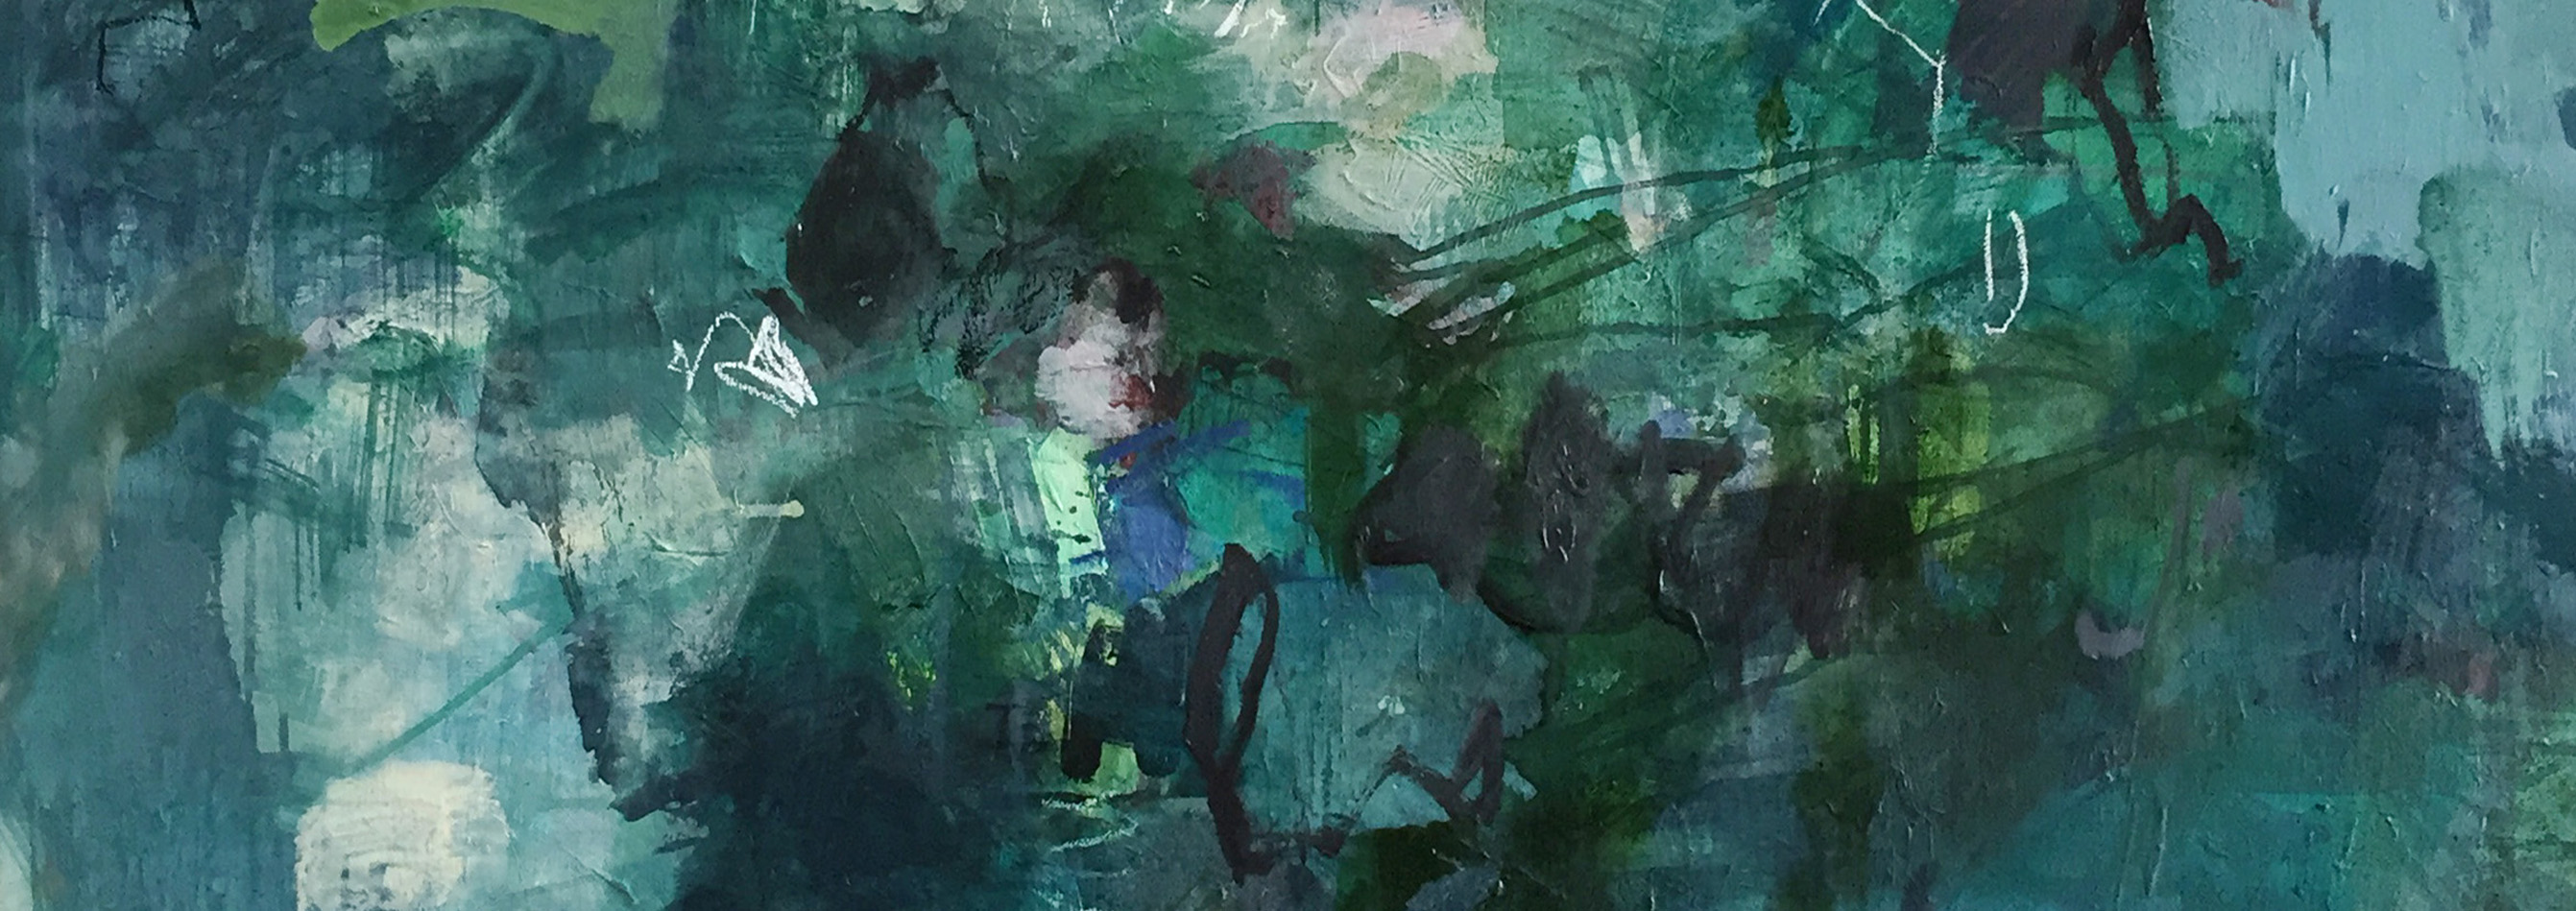 Working as an abstract painter, Kate's works are driven by instinctive and emotional responses to landscape and the energy of human interconnection. Losing herself in a dense subtropical environment and immersing the viewer in the rich and fecund terrain